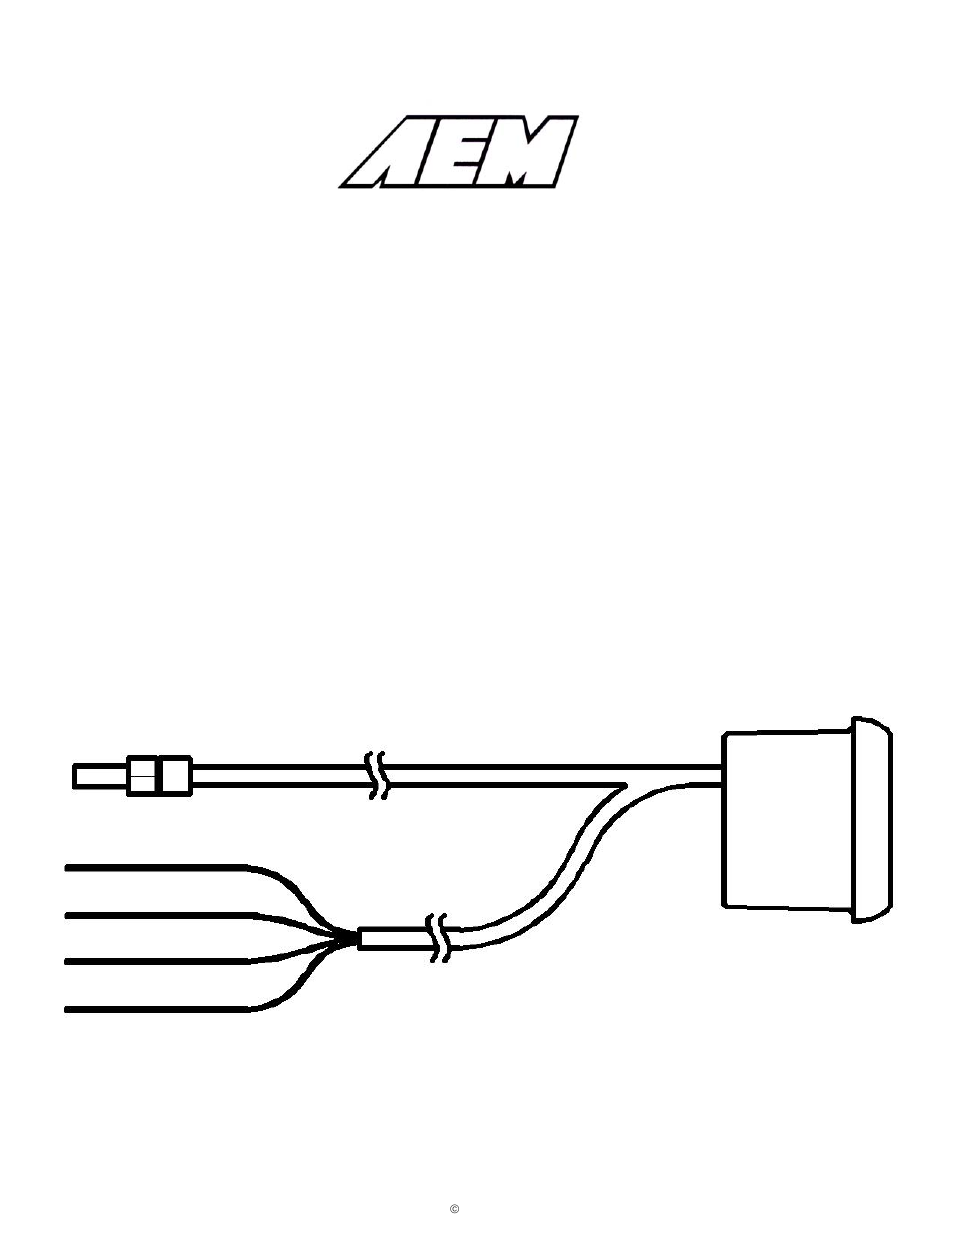 AEM 30-4408 Digital Boost Gauge User Manual | 2 pages | Also ... on